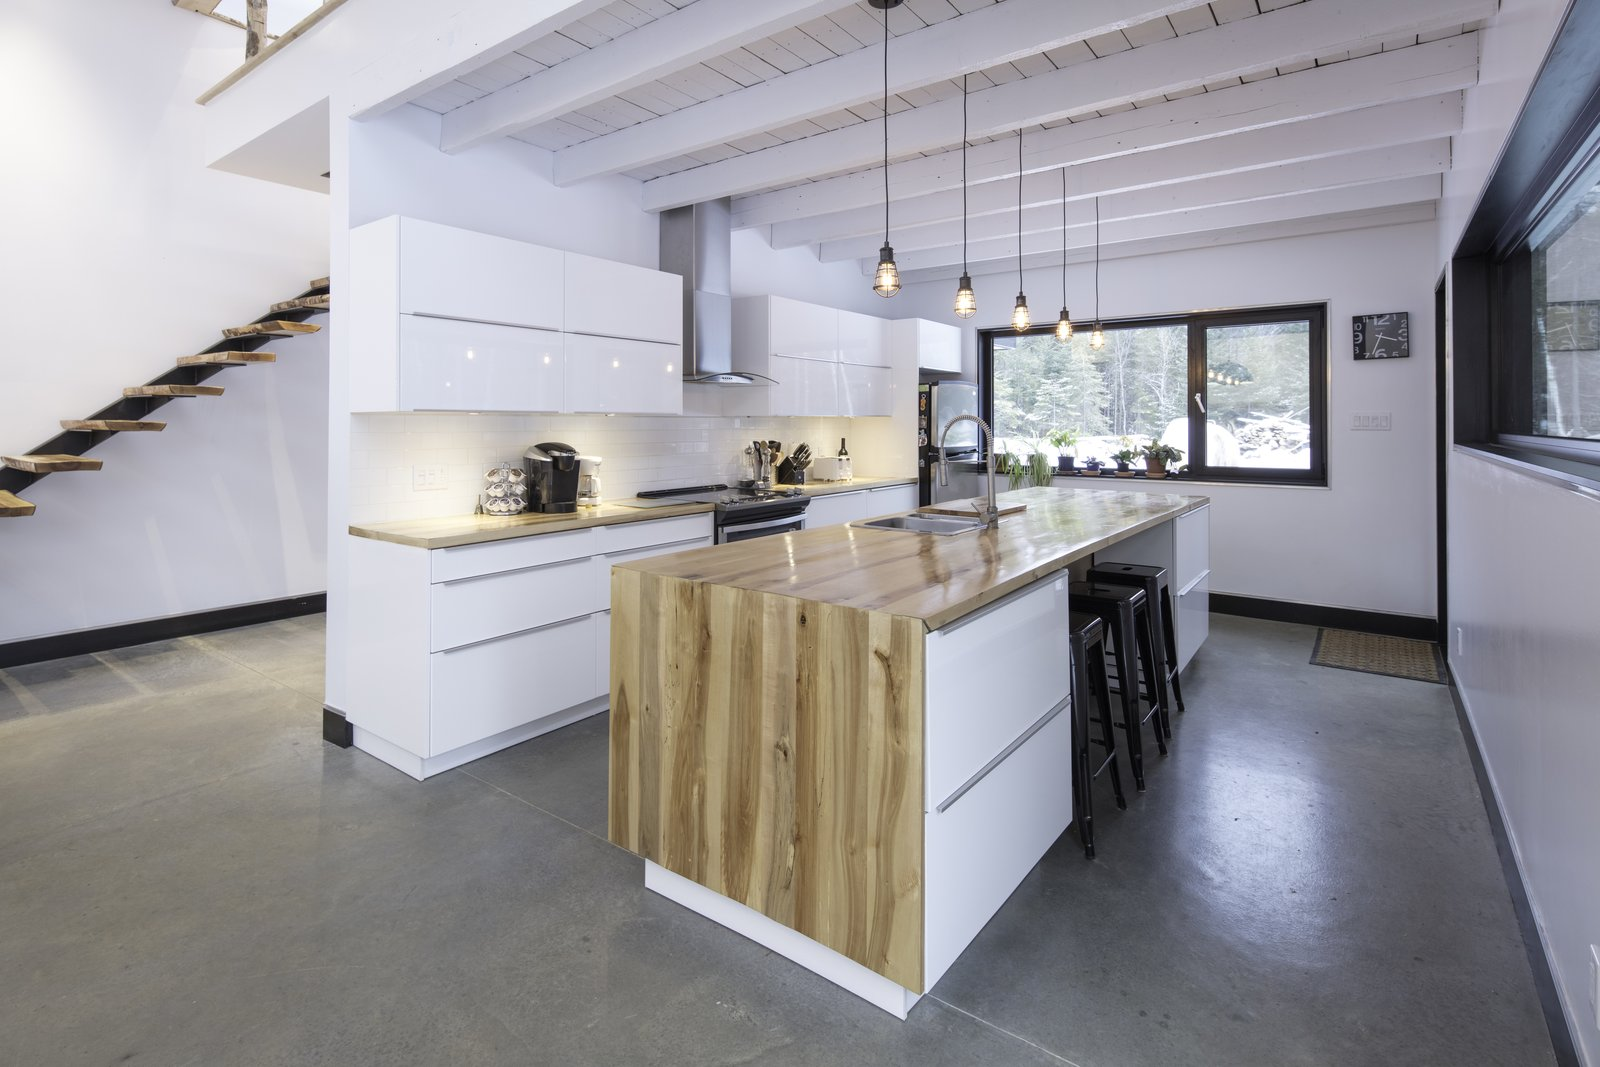 Kitchen, Wood, White, Wood, Concrete, Ceramic Tile, Pendant, Recessed, and Drop In Kitchen, all wood finishes was taken from the forest.  Best Kitchen Wood Wood Drop In Pendant Concrete Photos from Maison Lac Brûlé